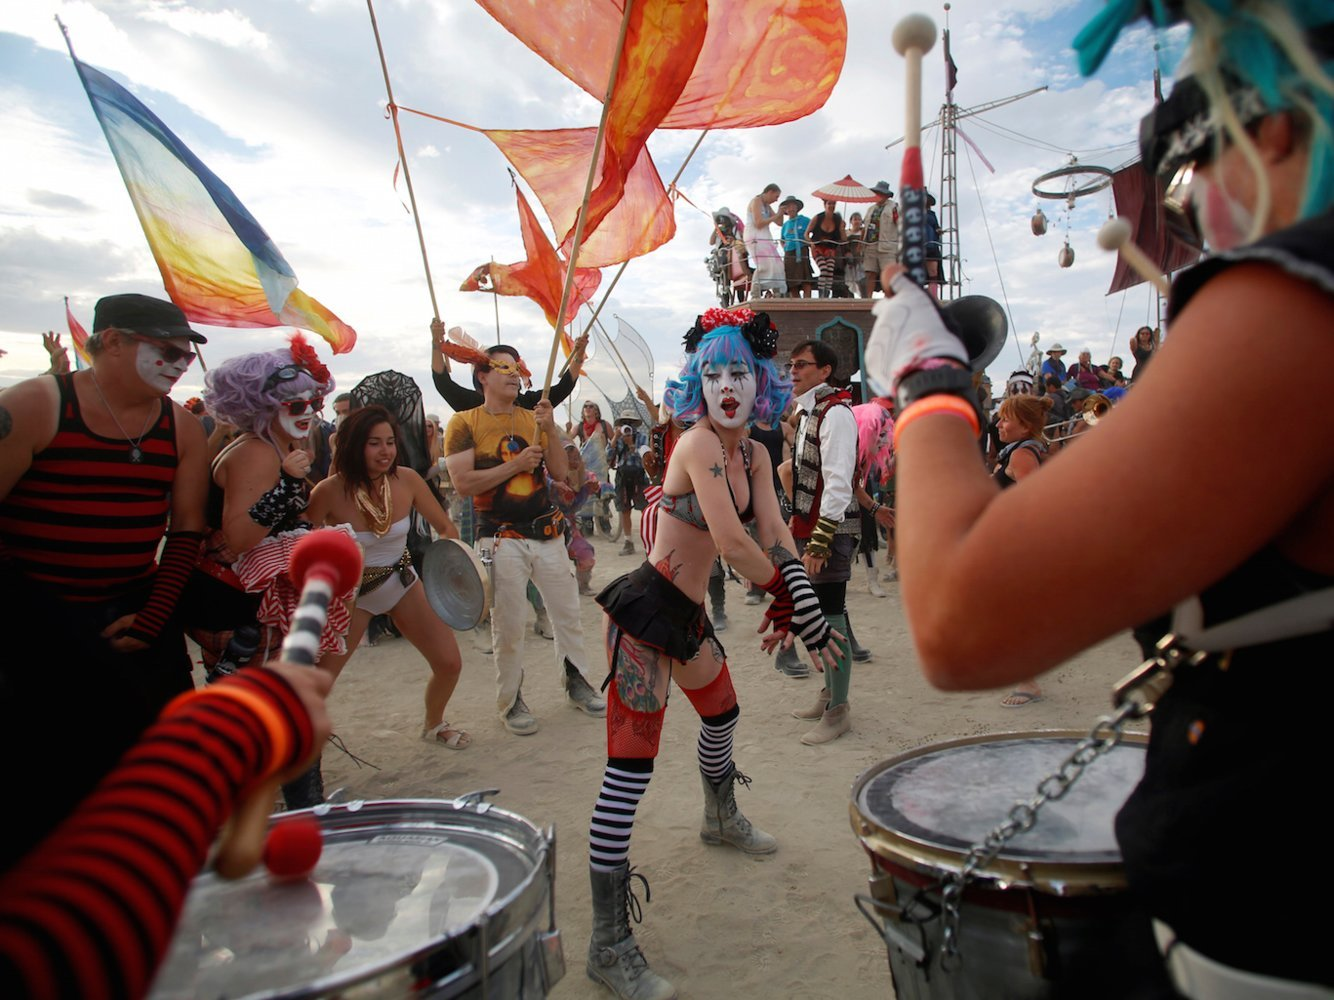 I'm a kosher-eating, Shabbat-observing, drug-fearing orthodox Jew who attended Burning Man — here's how it helped me overcome my introversion